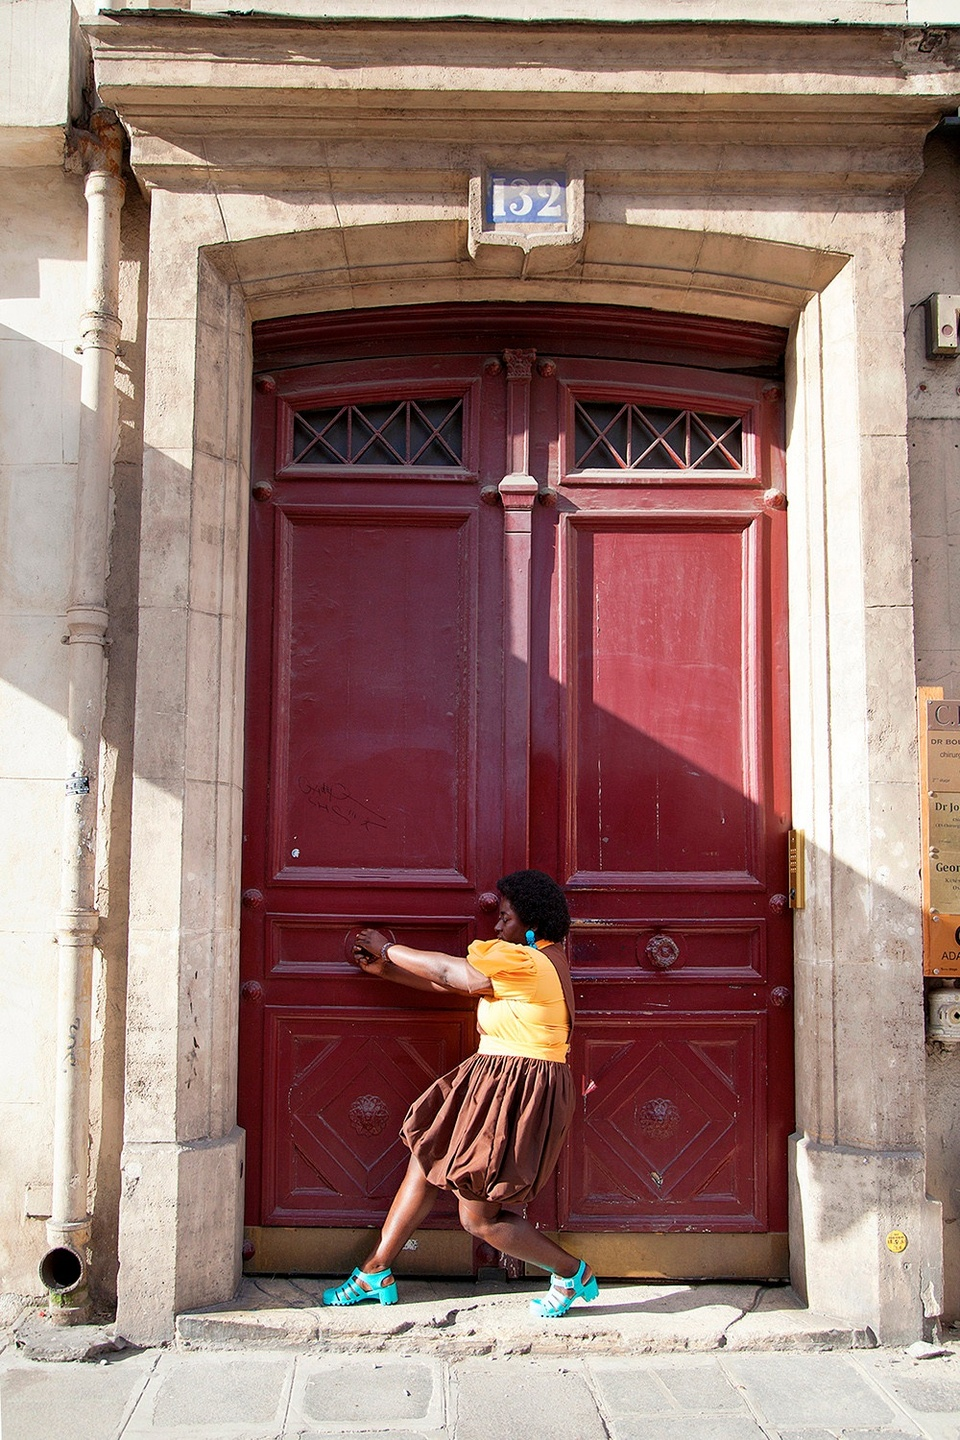 Photograph of an individual in a gold shirt, brown skirt, and teal shoes pulling on one knob to a huge, burgundy double door that is framed by stonework.